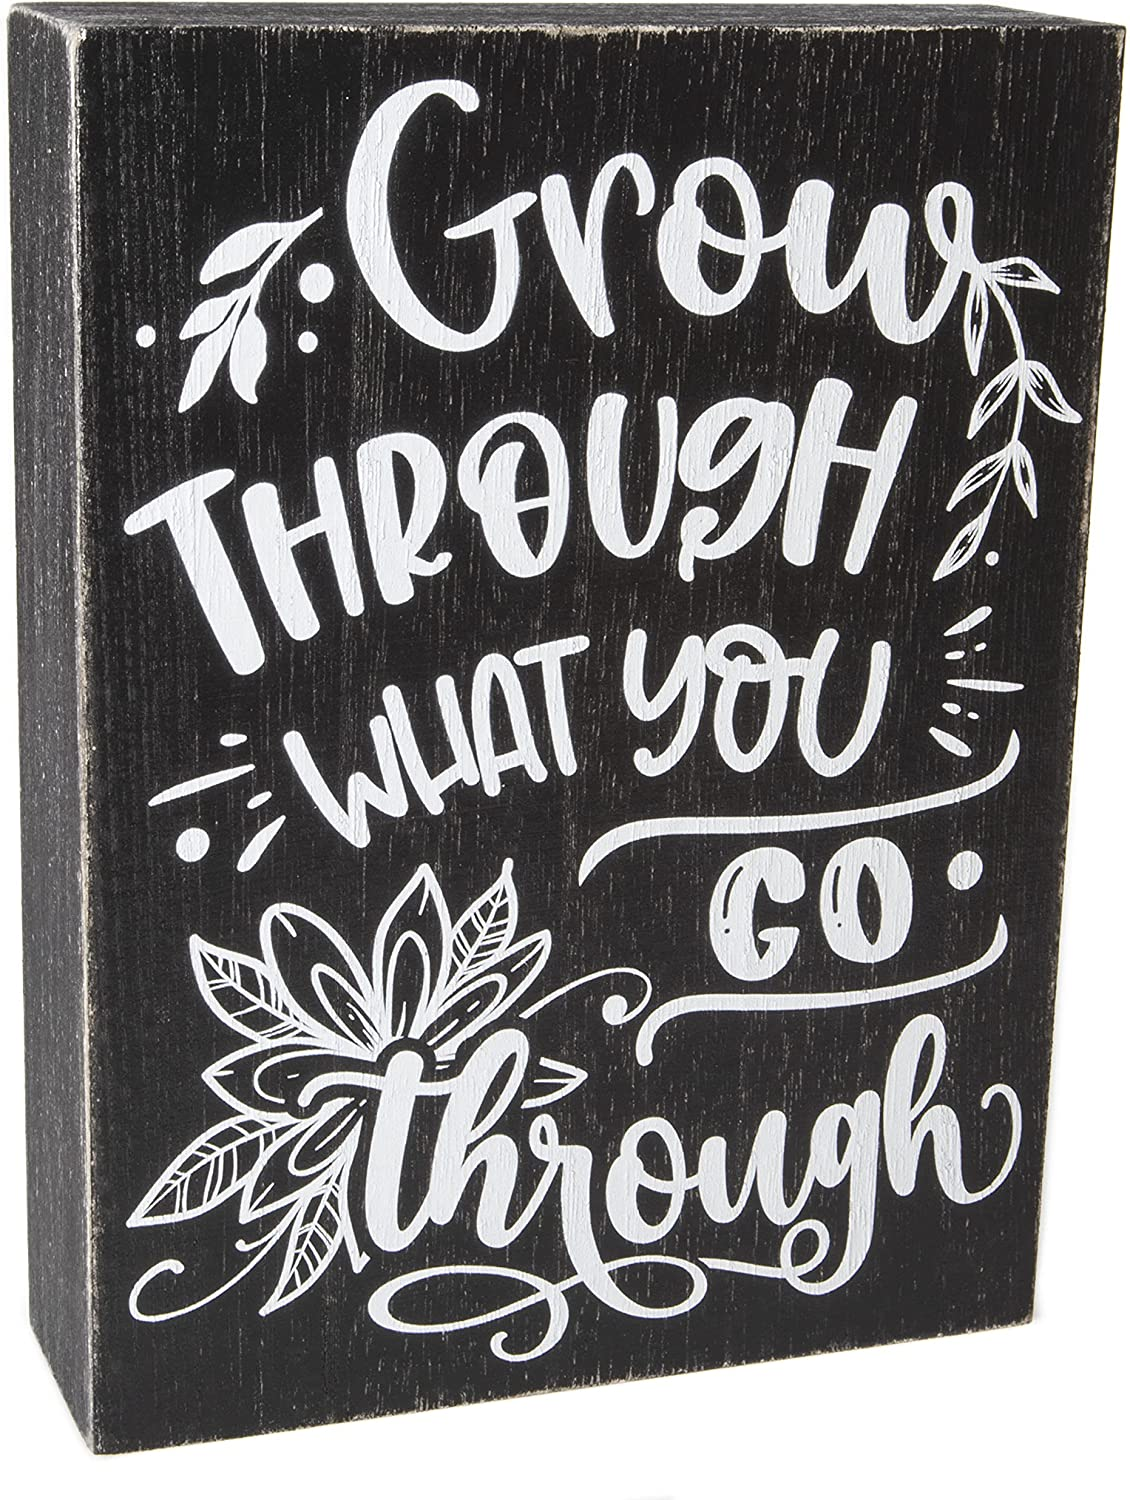 Inspirational Wall Art - Positive Office Quotes Decor - Cubicle Accessories - Cute Room Decor for Women - Desk Decor for Home Bedroom - Motivational Decorations